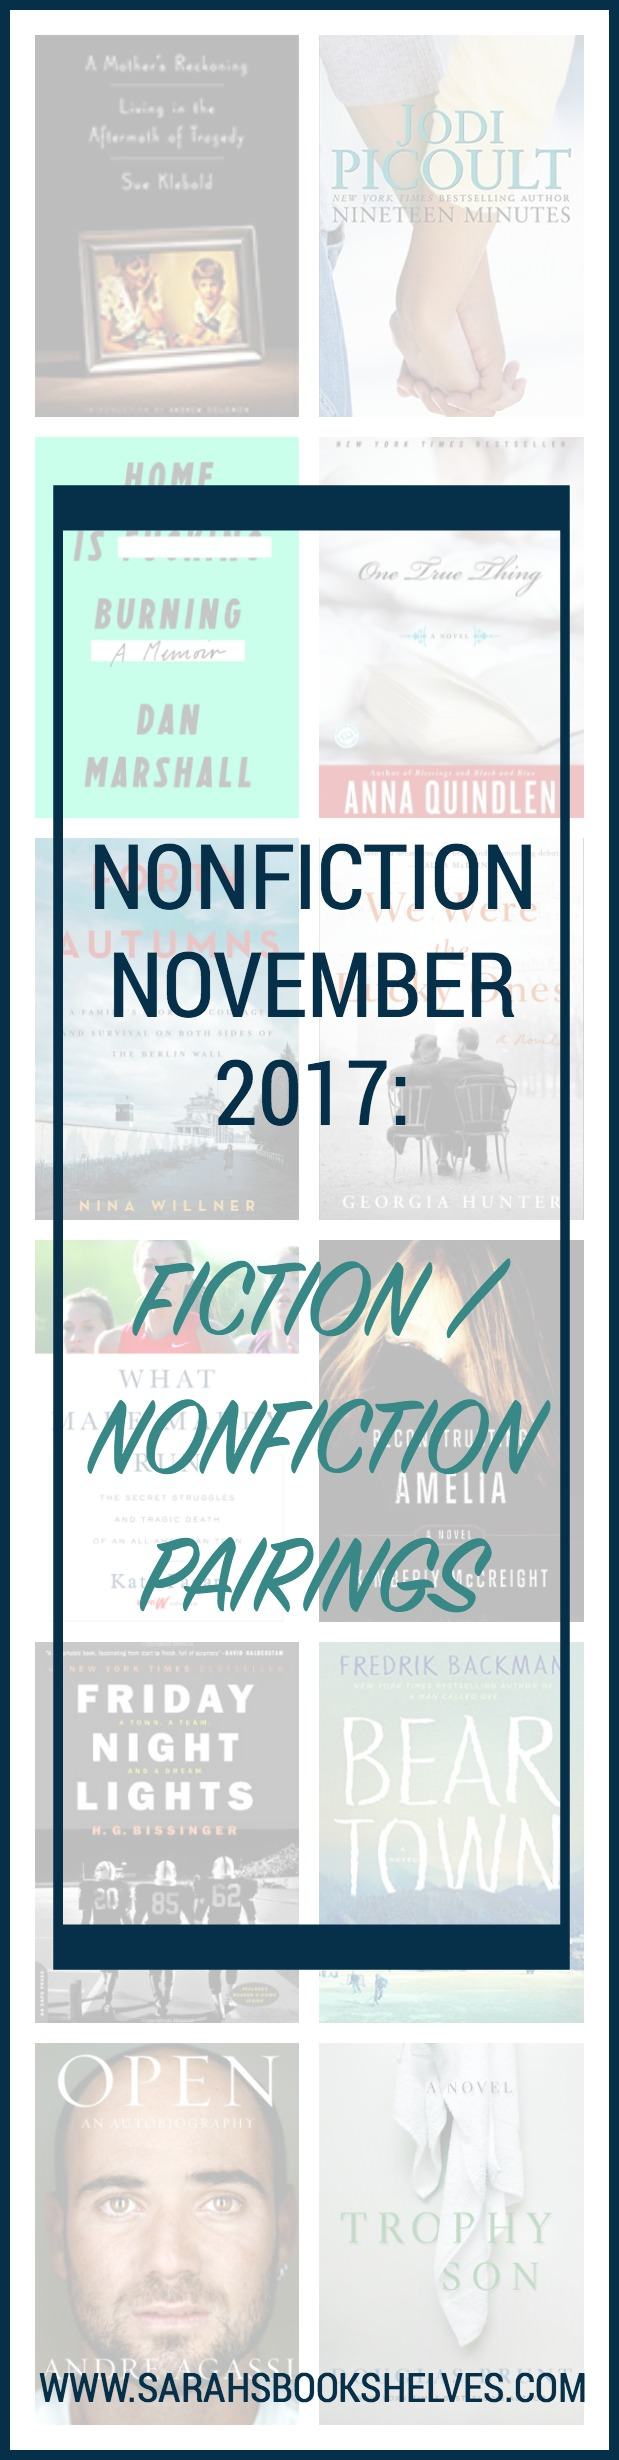 Nonfiction November 2017: My favorite fiction nonfiction pairings of 2017...including caring for ill parents, pro tennis, the intensity of youth sports and more. #reading #book #bookish #bookworms #booklovers #booklist #nonfiction